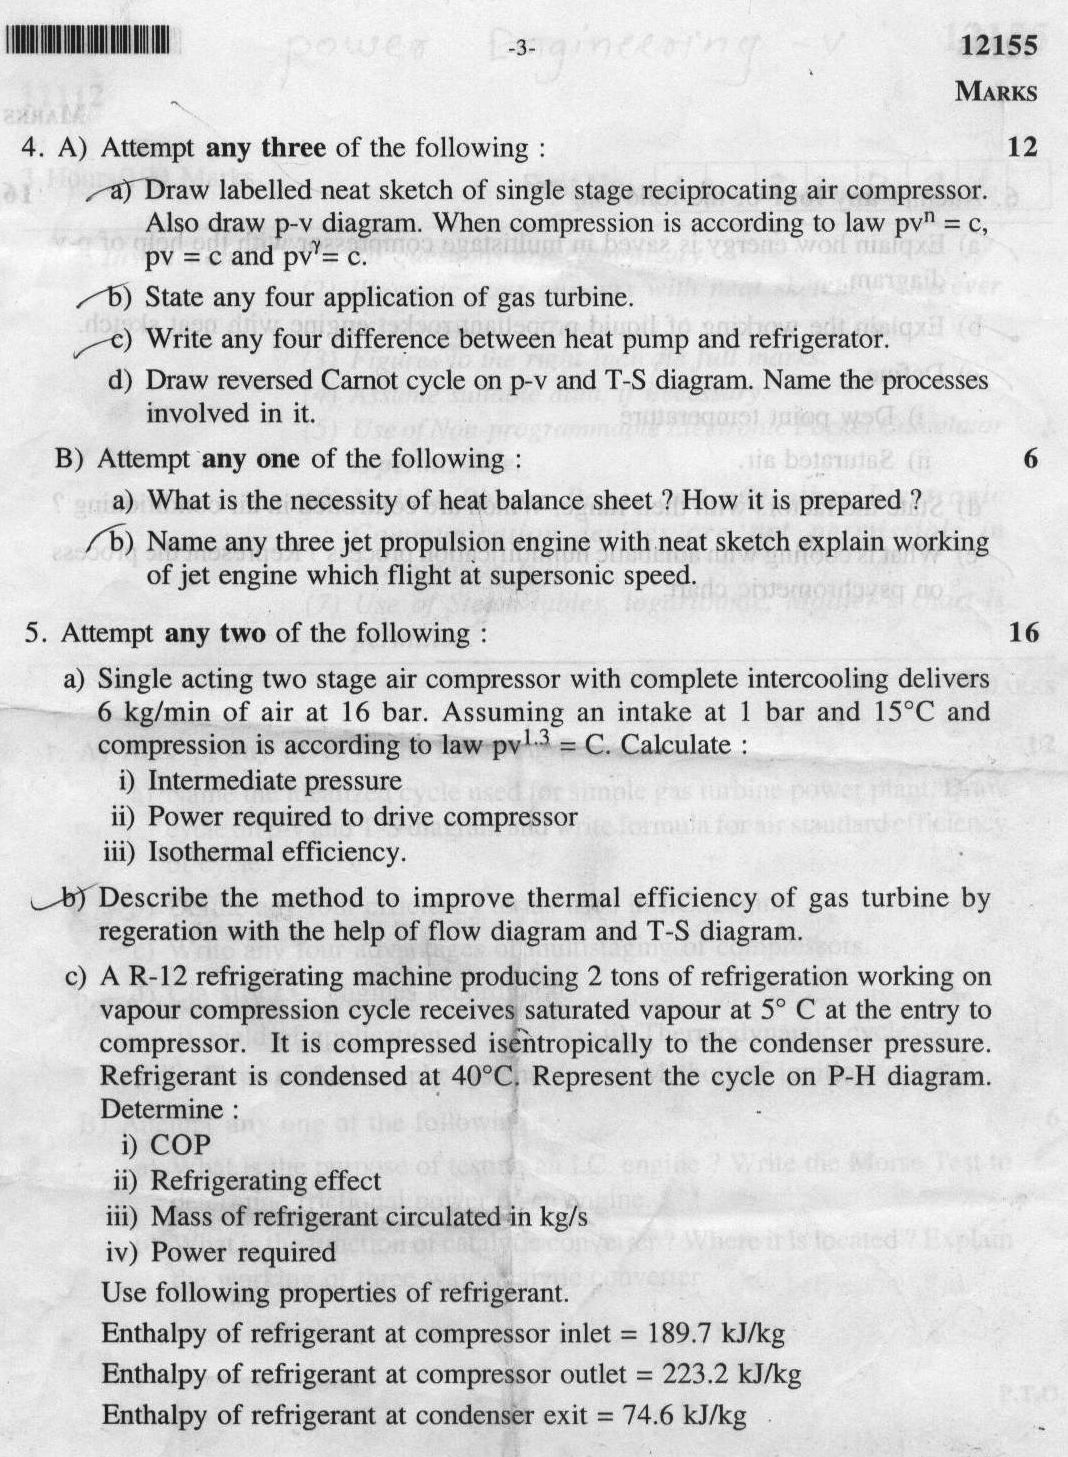 source of mechanical energy engineering essay An object's mechanical potential energy derives from work done by forces, and a label for a particular potential energy comes from the forces that are its source for example, the roller coaster has potential energy because of the gravitational forces acting on it, so this is often called gravitational potential energy .